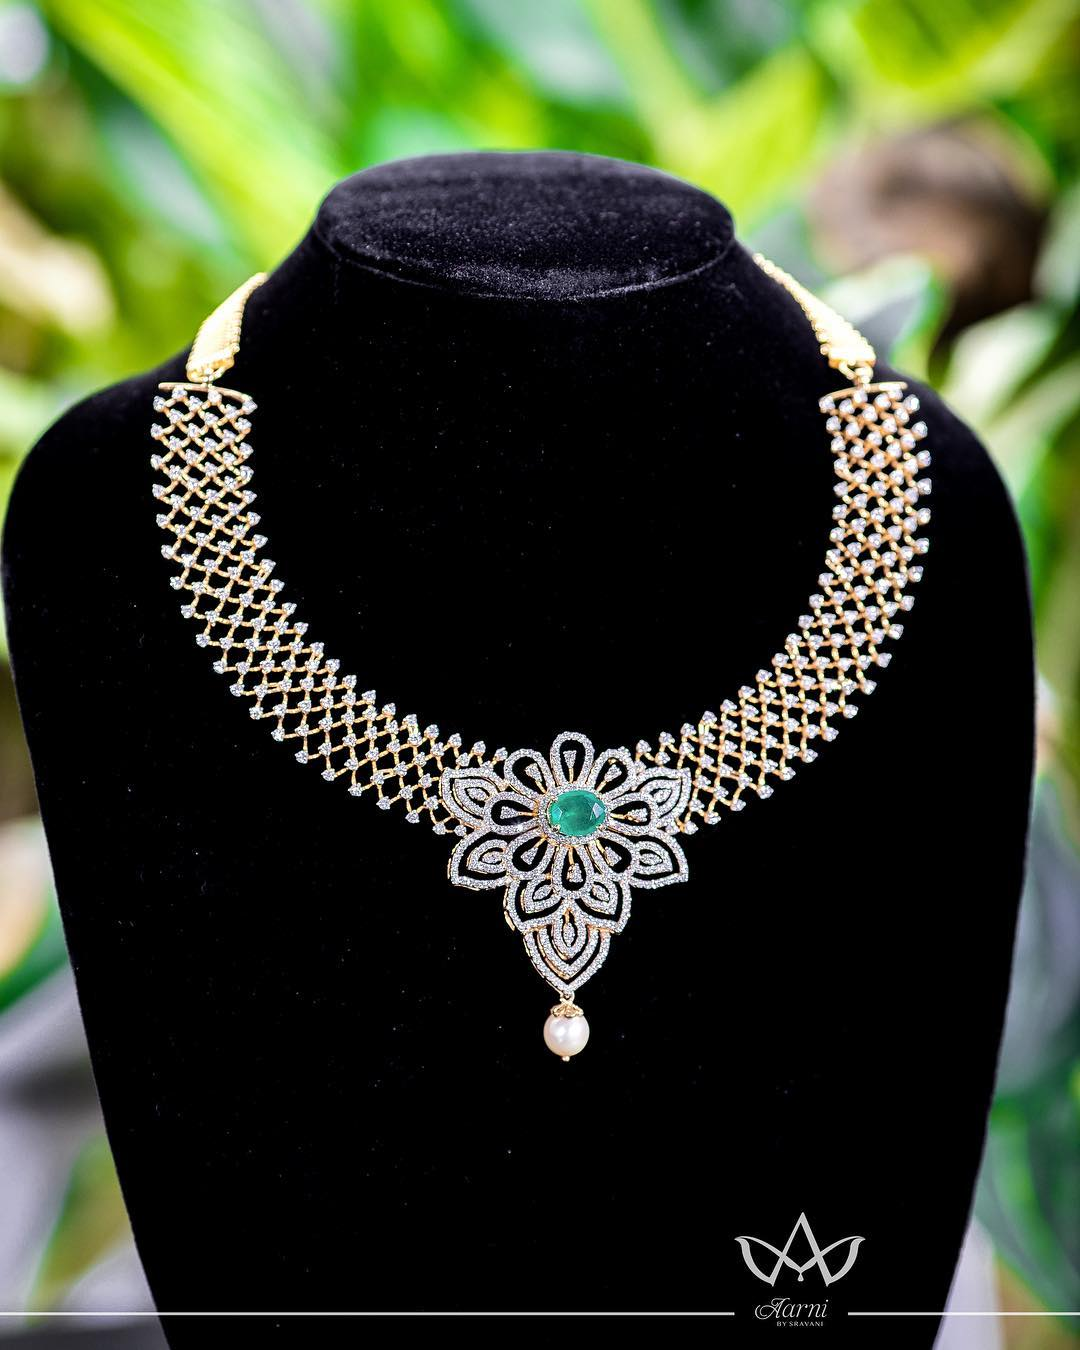 Amazing Necklace From Aarni By Shravani